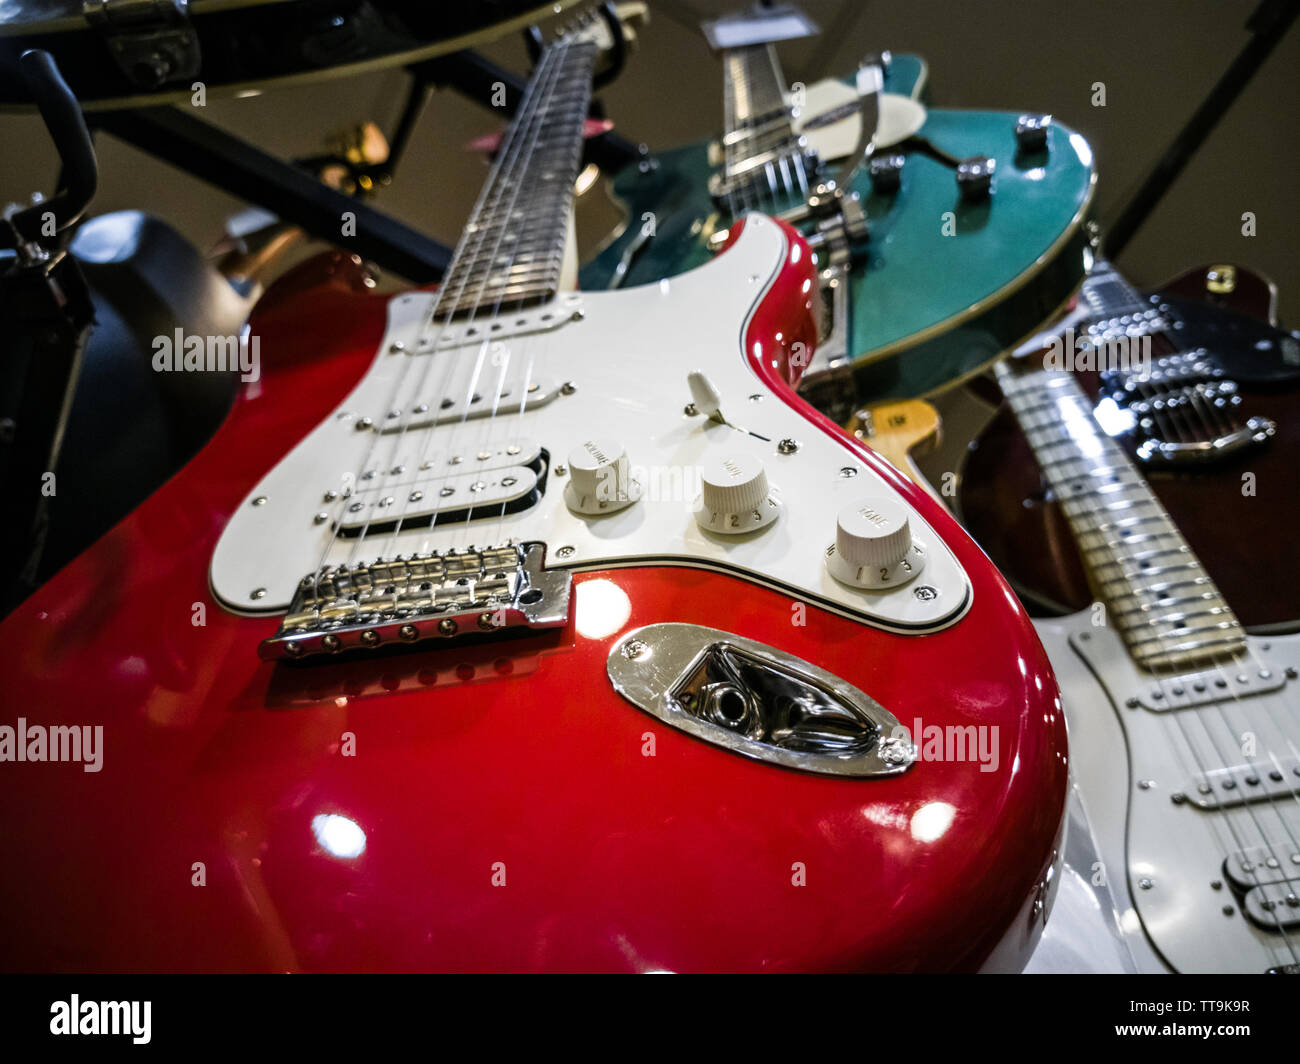 Red Stratocaster Stock Photos & Red Stratocaster Stock